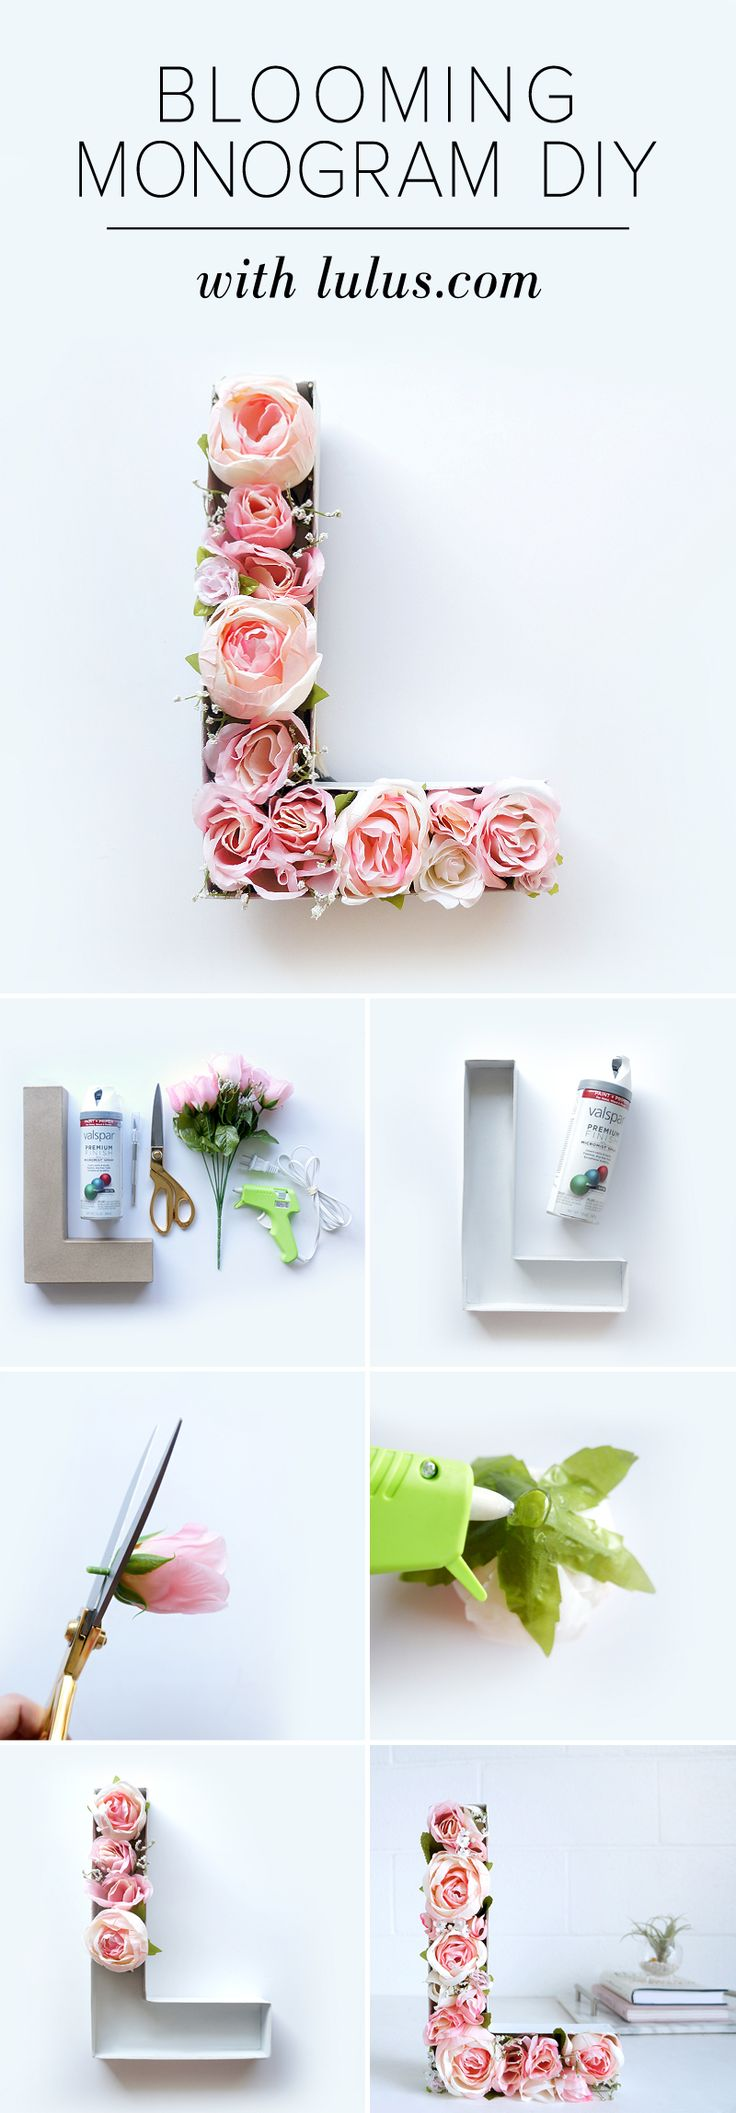 { Blooming monogram } 'golabowski' might be over doing it but 'love' or c & p would be cute! @loverly @brightpink @davidsbridal